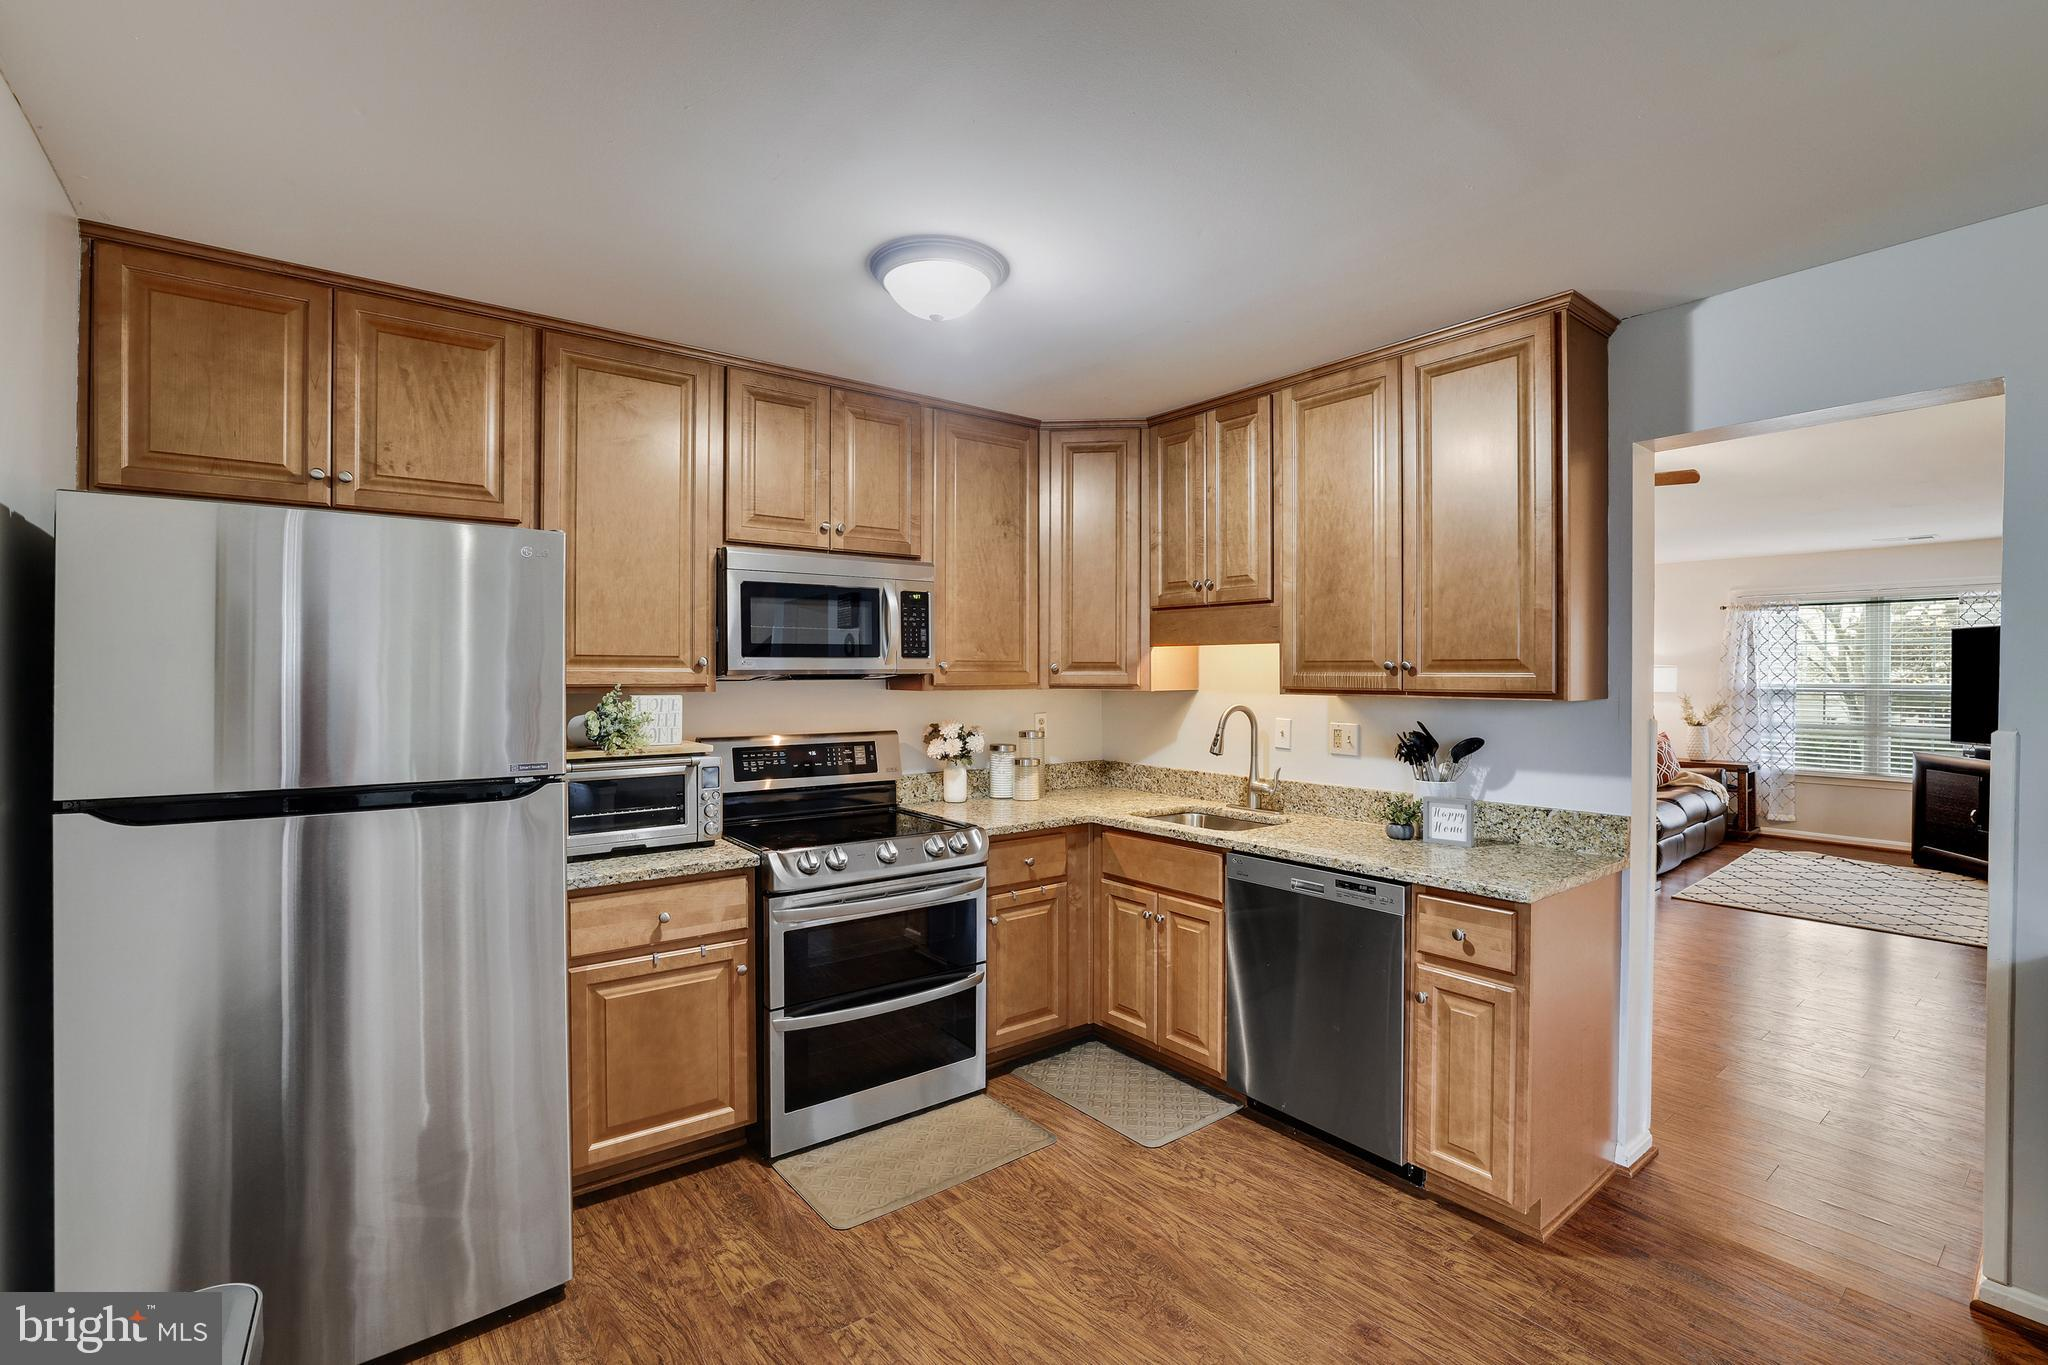 Check out the live action video!  https://perfecthomephotography.com/20279vt/i_fp Awesome Crofton Community of Bancroft! **3 Bedroom/2 Bath Townhome** FULLY RENOVATED kitchen featuring Stainless Steel Appliances, Granite counter tops and luxury vinyl flooring** Updated bathrooms are fresh and clean with newer vanities, mirrors and lighting. This home is freshly painted, modern and crisp and move in ready! Spacious rooms, and ample windows for enjoying Fall views**Beautiful lighting and beautiful floors**Great central location means easy commuting**Thriving Crofton Community within walking distance to library, restaurants and shopping** This Gem offers a versatile floor plan so you can create YOUR dream space. **Ample room for large furniture pieces (not easy to find)**Backs to common area for quiet relaxation in fully fenced private yard with patio** **Covid 19 protocols required: Masks, gloves and booties required during showings-no exceptions. No more than 3 people in property at one time. Open House Saturday, 11/7/2020 from 1-3:00.